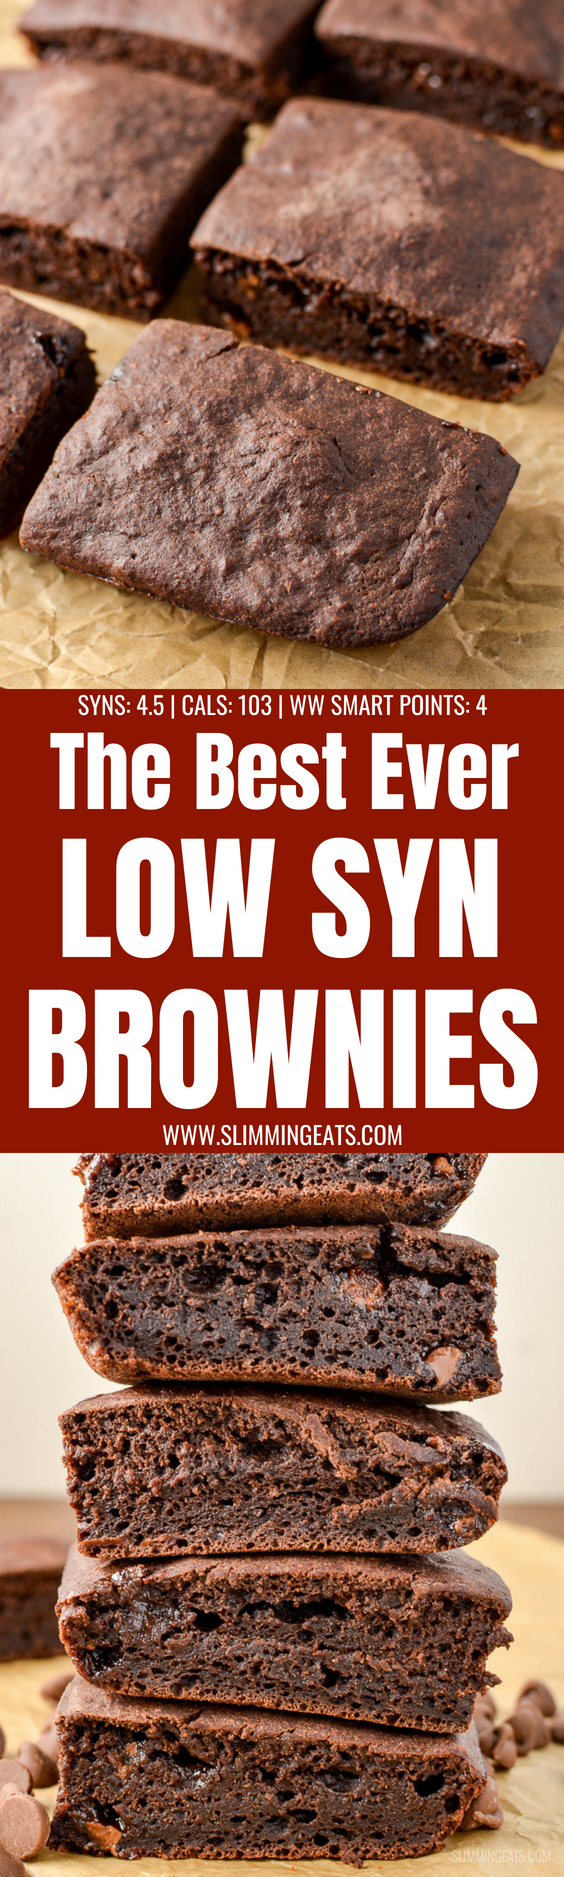 These are by far the best ever low syn chocolate brownies you will make. Real Ingredients, low syns and delicious chocolately flavour. Dairy Free, Vegetarian, Slimming World and Weight Watchers friendly